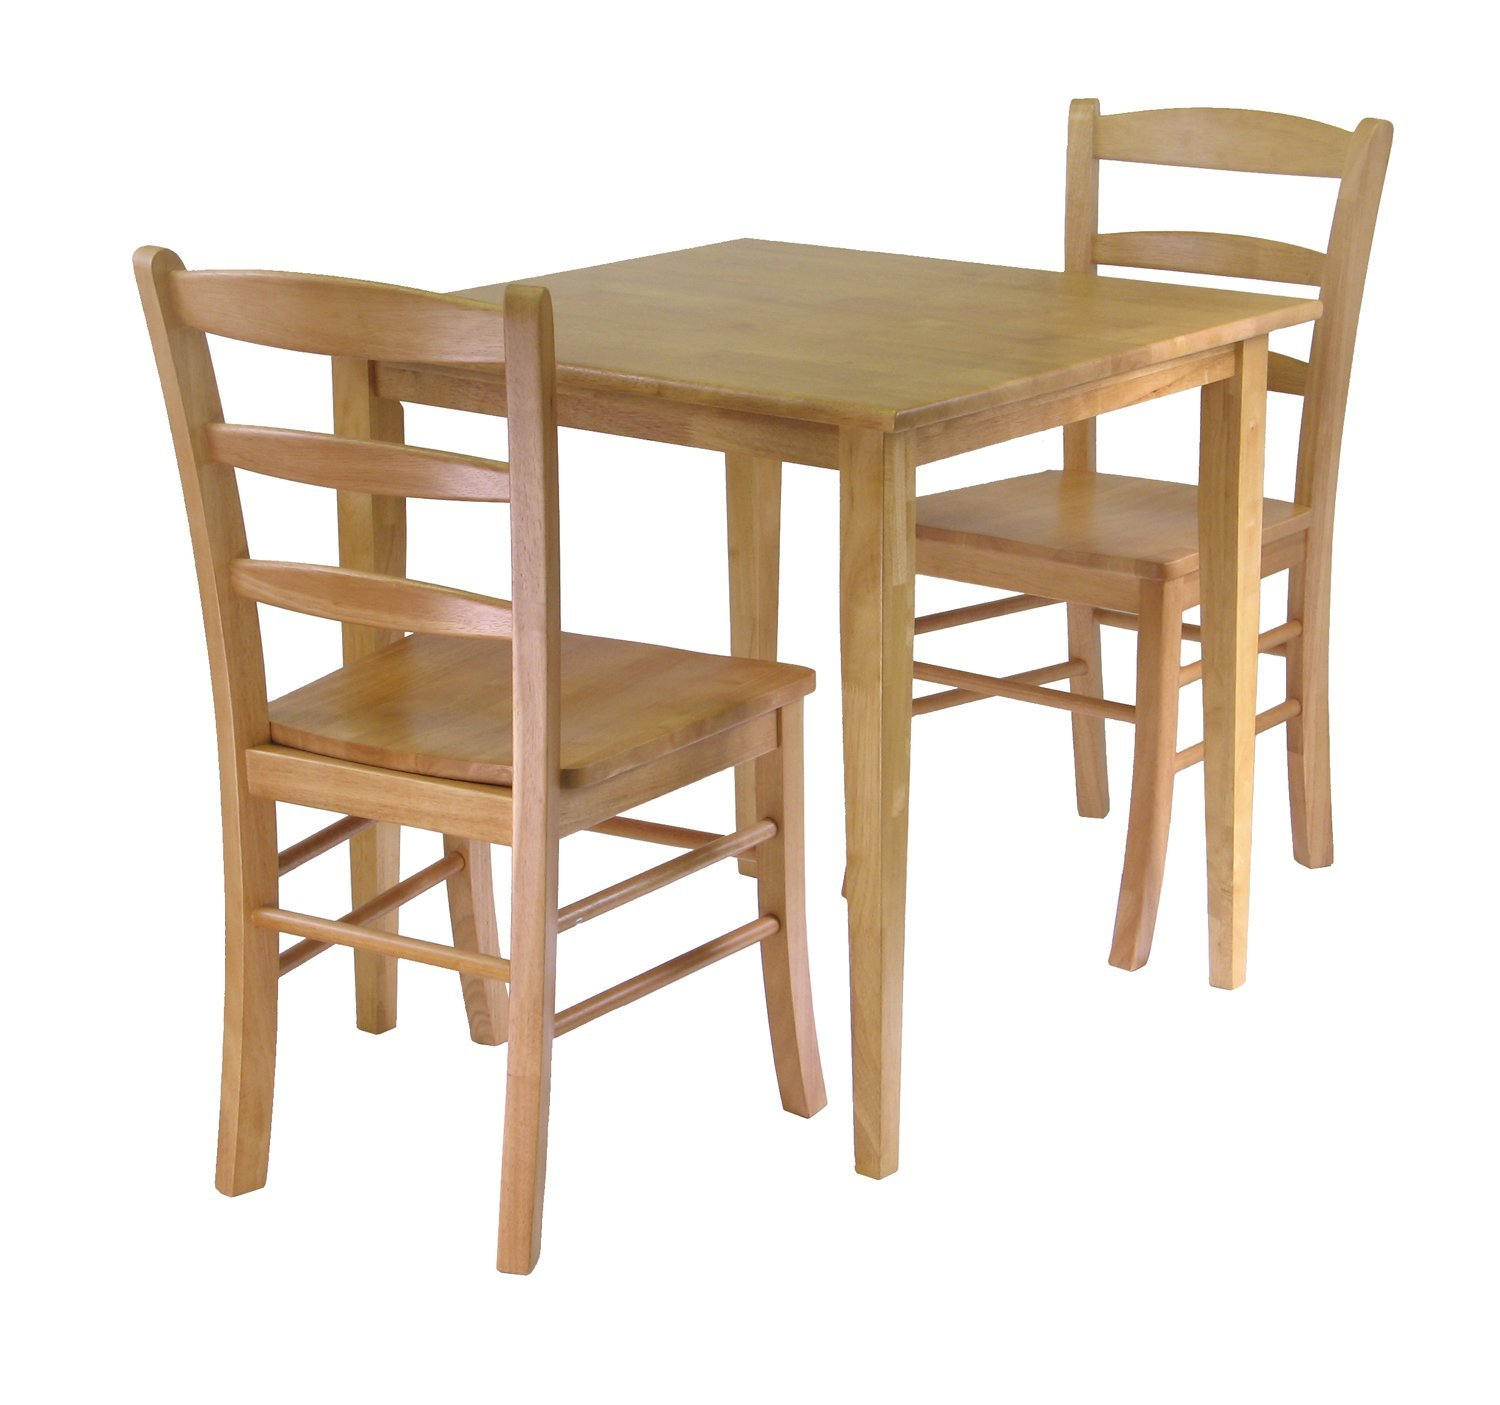 Square kitchen tables for small spaces good winsome for Good dining tables for small spaces